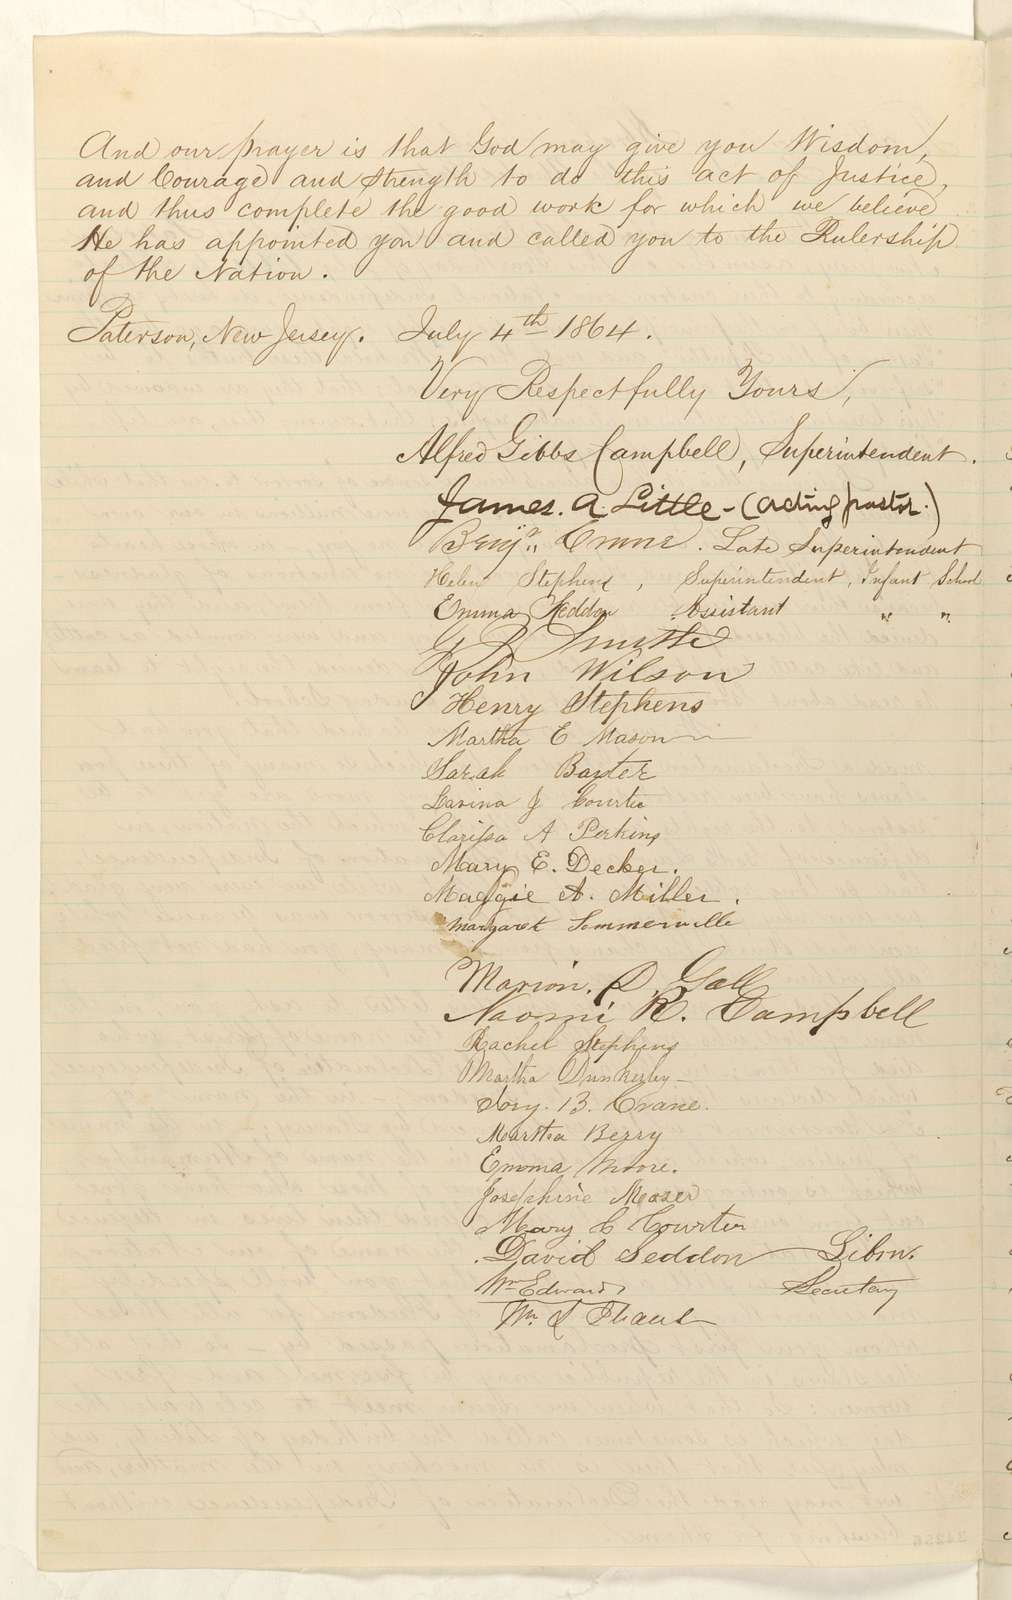 Abraham Lincoln papers: Series 1. General Correspondence. 1833-1916: Congregational Church at Paterson, New Jersey to Abraham Lincoln, Monday, July 04, 1864 (Petition recommending second Emancipation Proclamation)